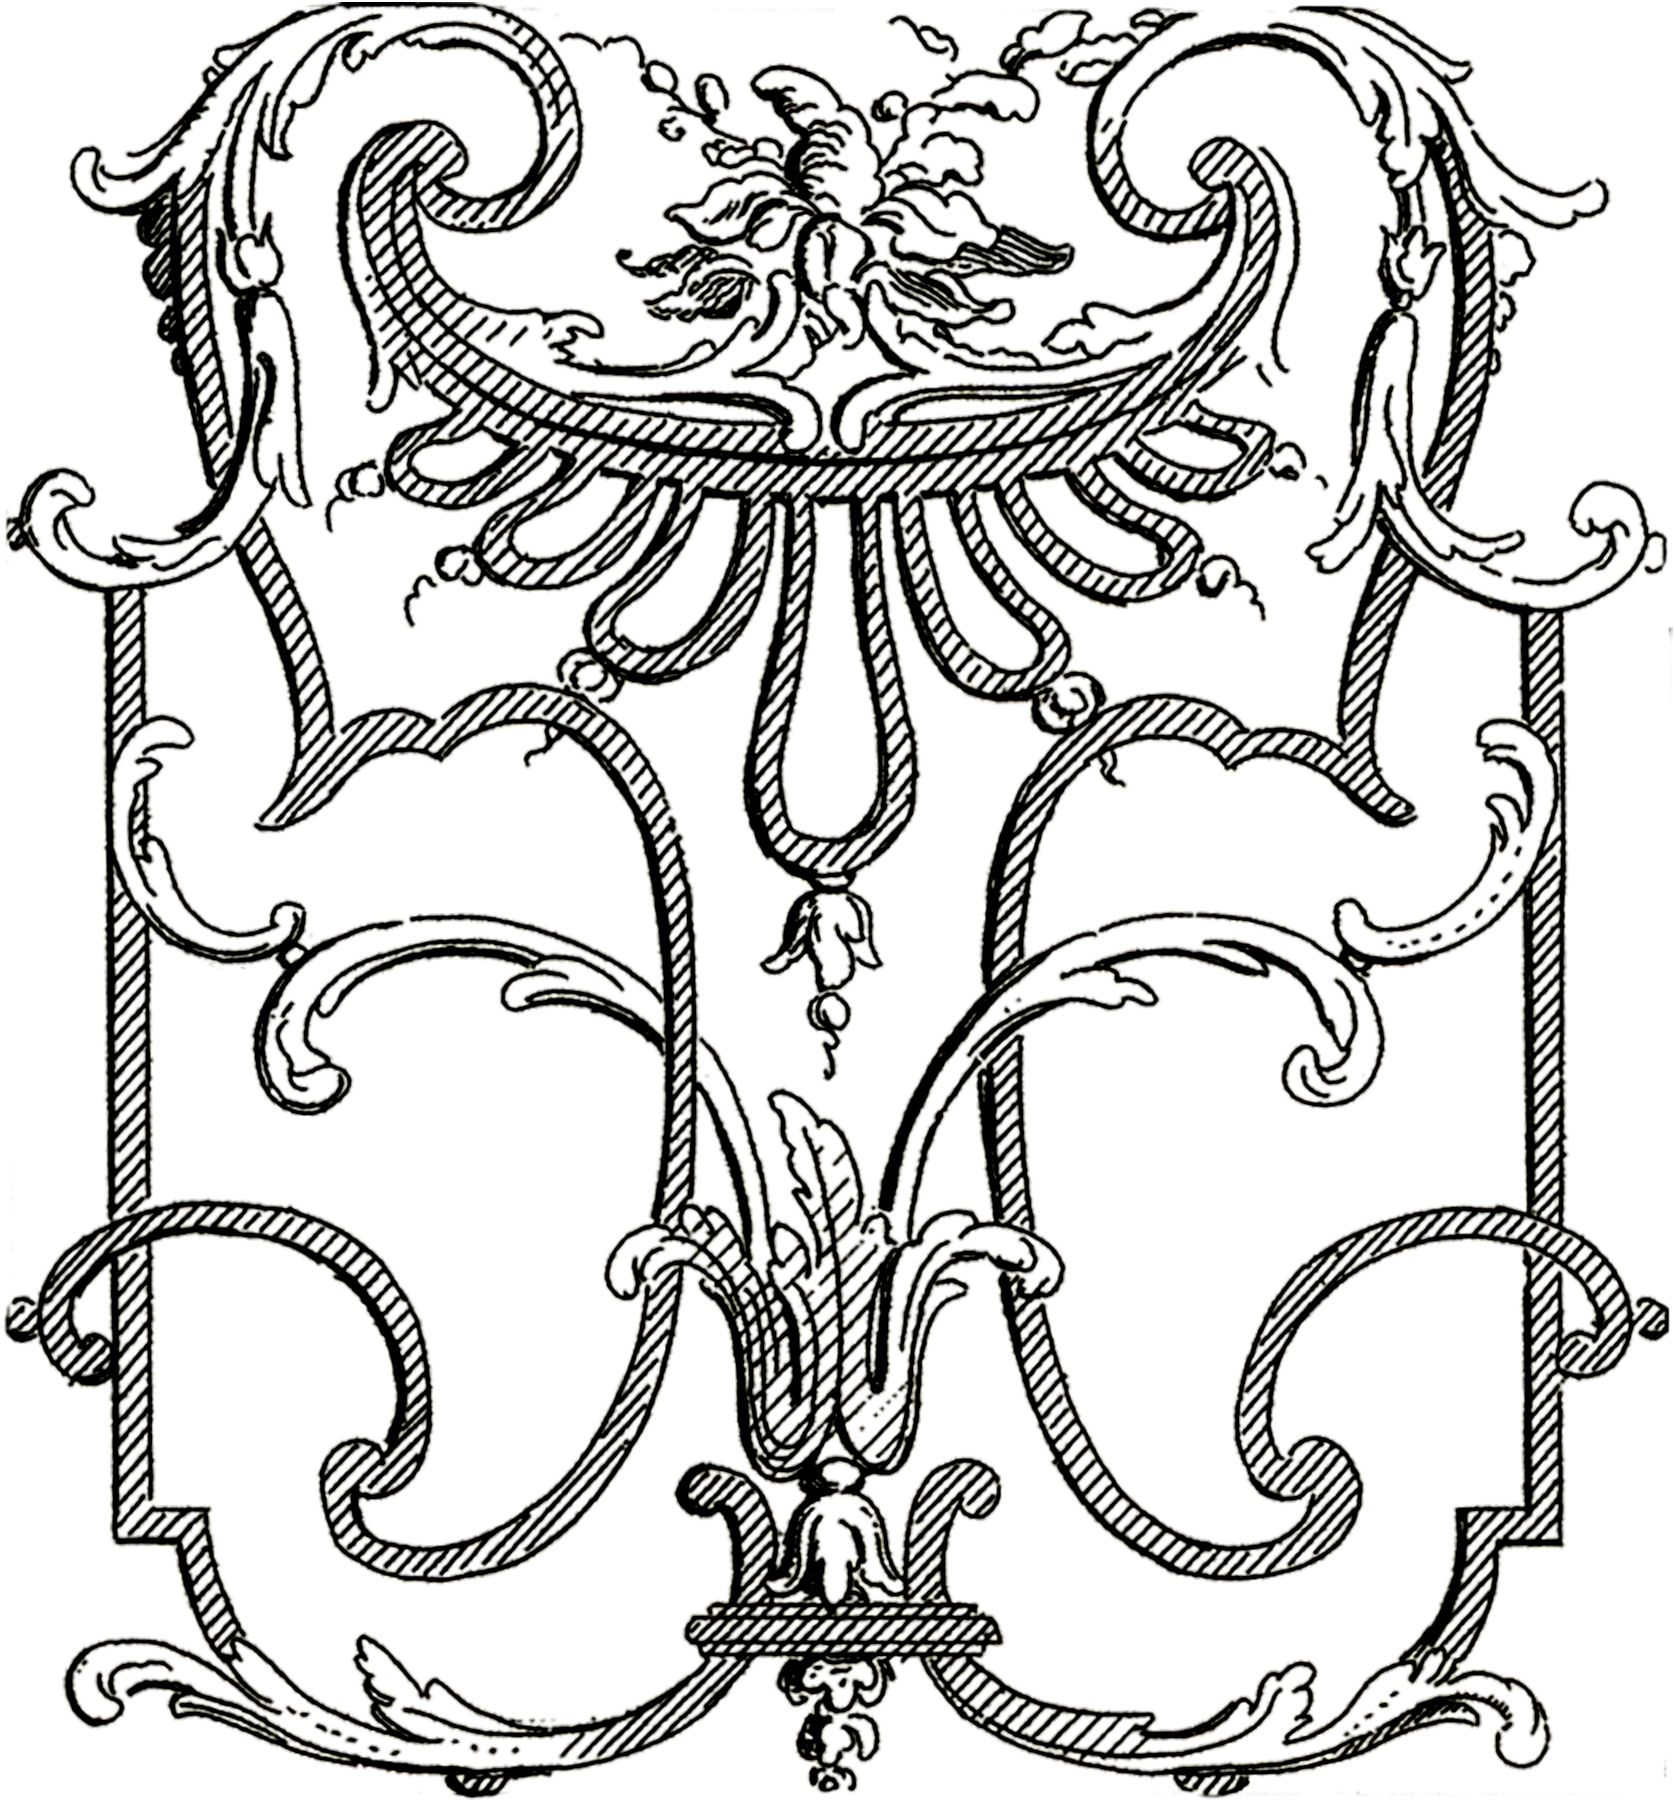 Architectural decorations clipart image library French Architectural Ornaments - Beautiful! | Invitations ... image library